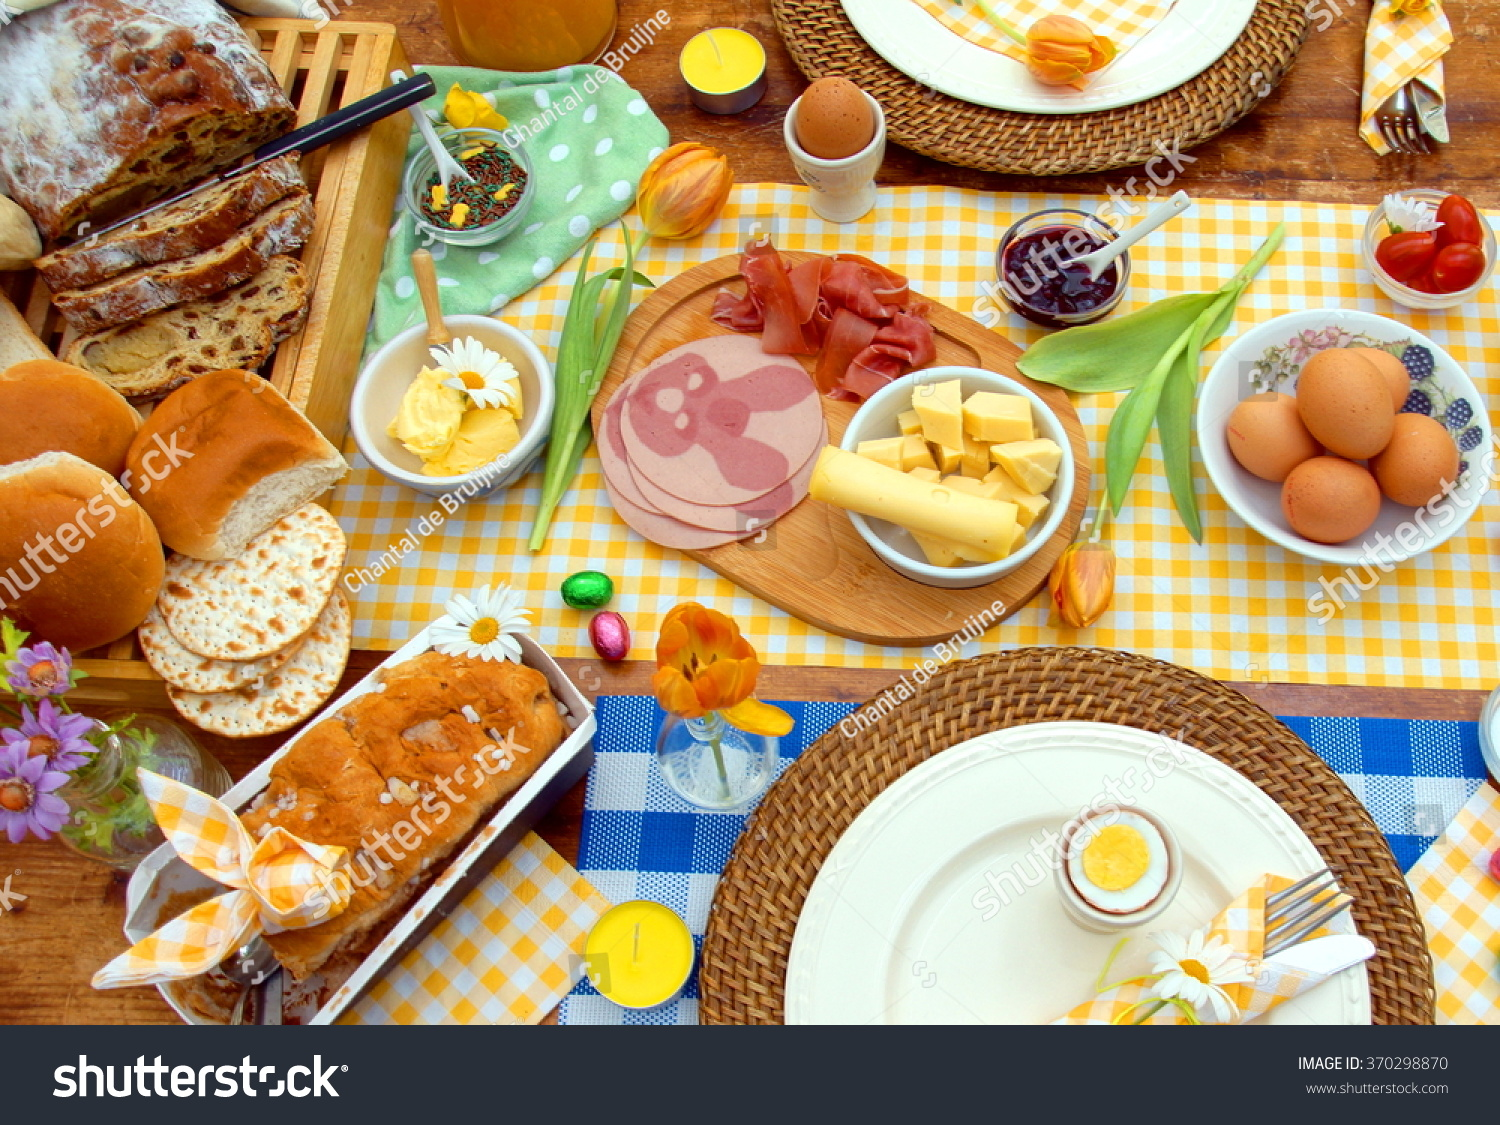 Table Setting For Breakfast Breakfast Brunch Table Setting Full Healthy Stock Photo 370298870